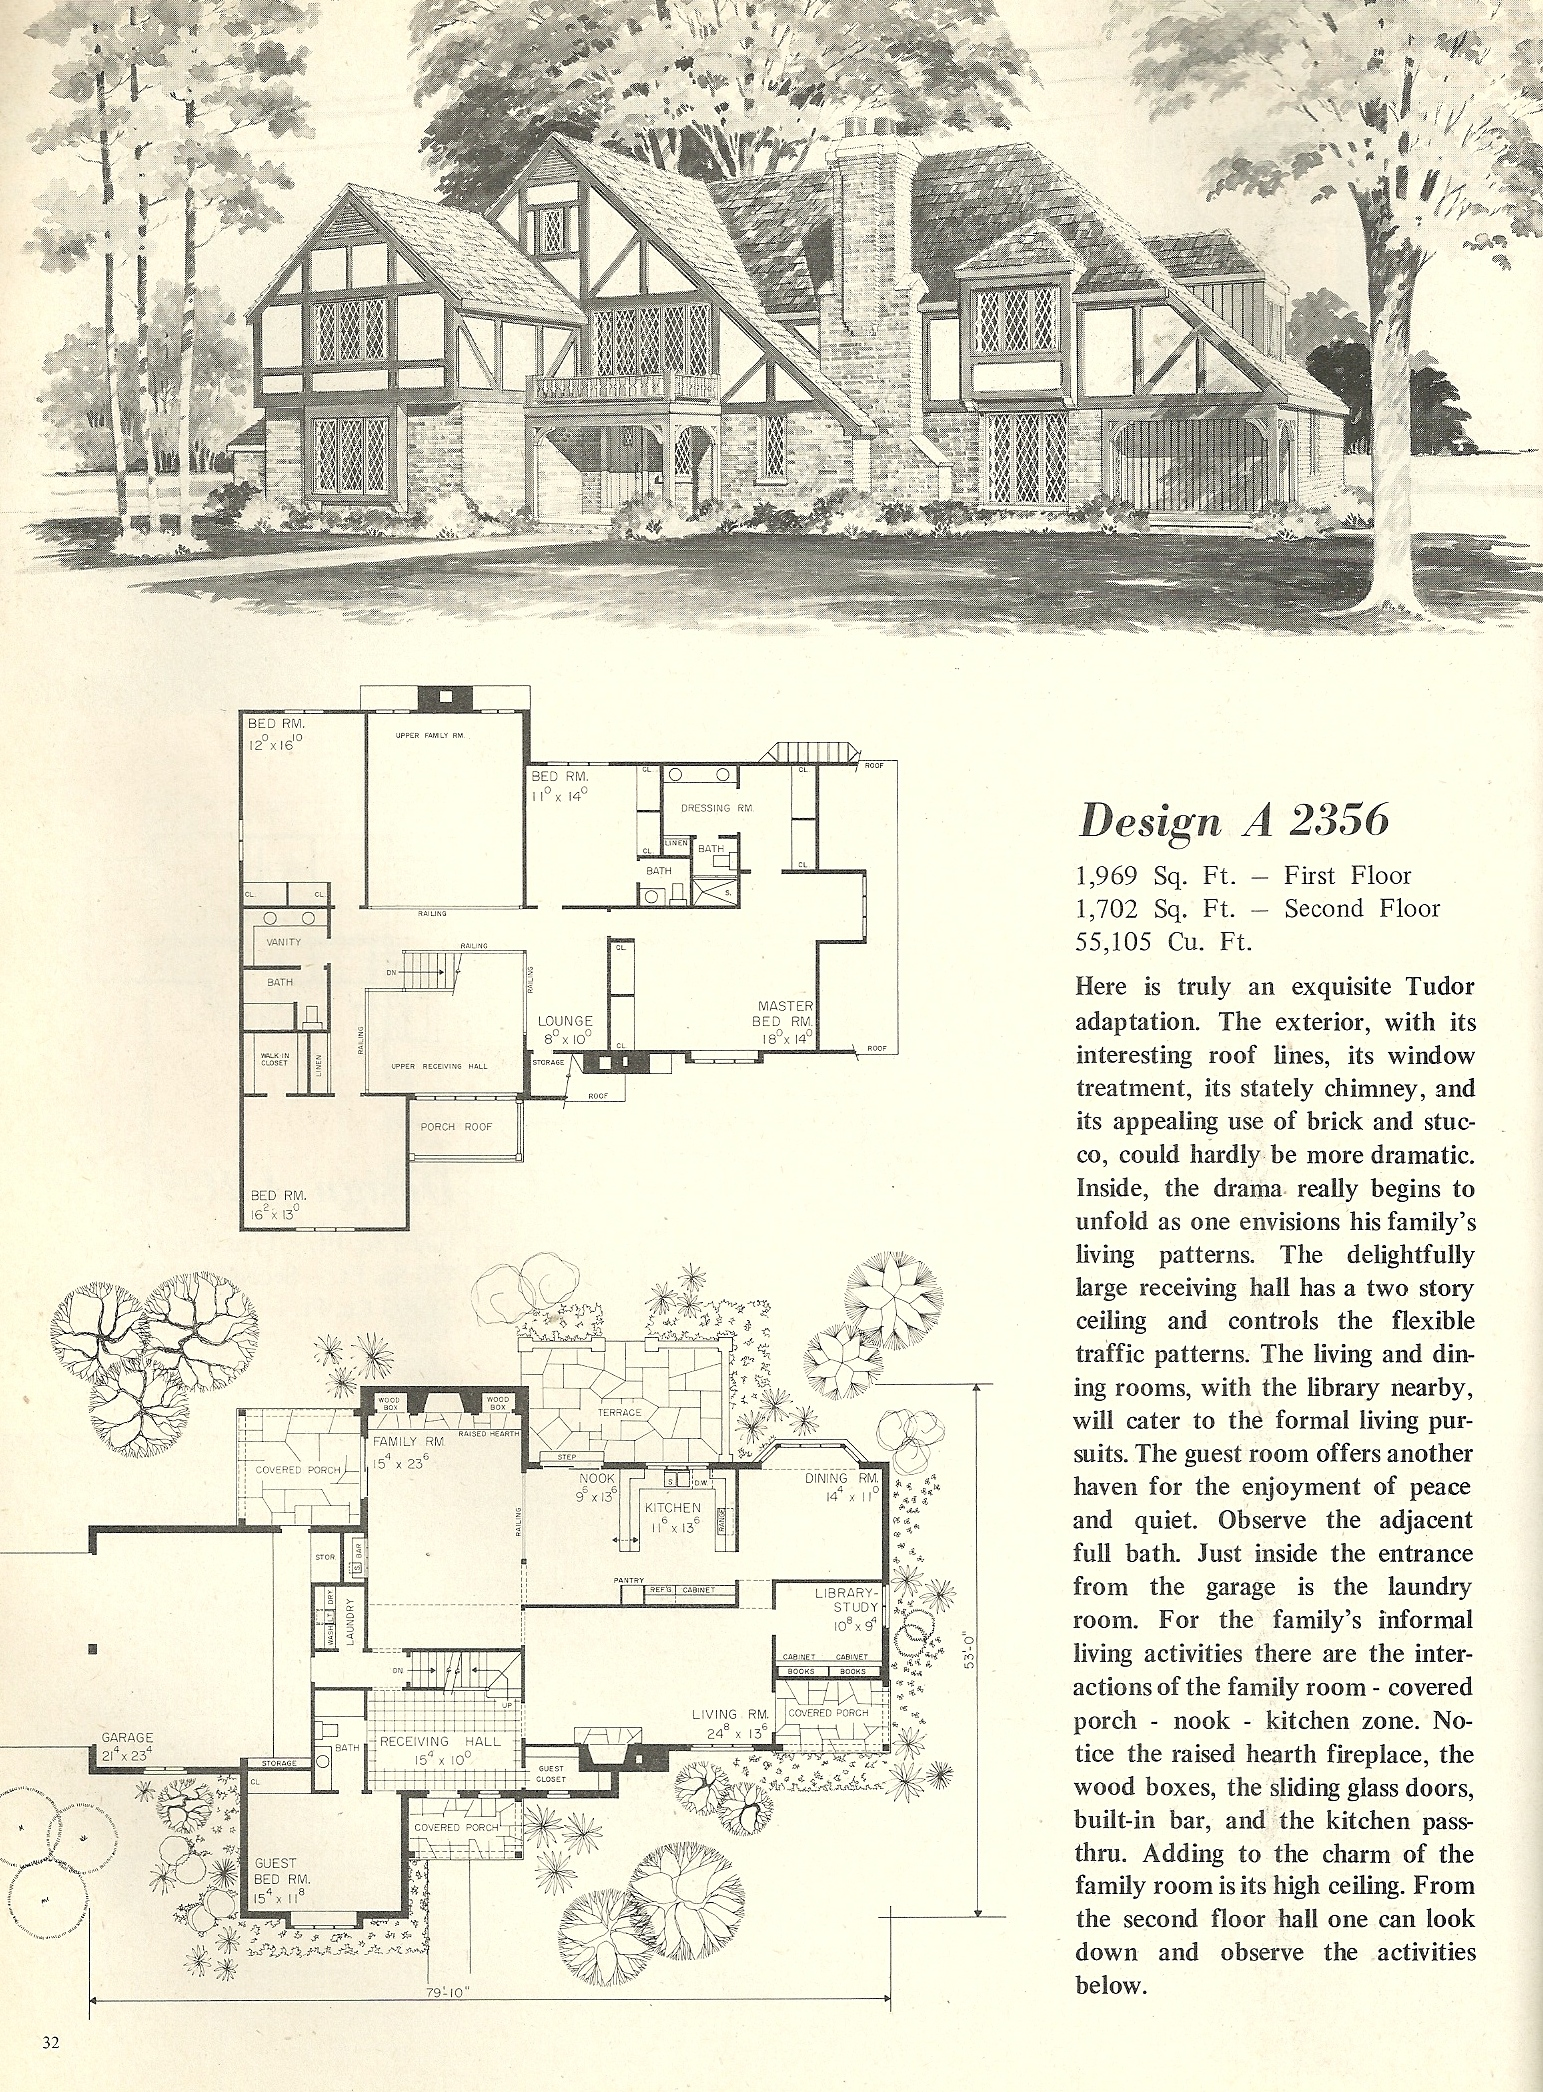 Vintage house plans 2356 antique alter ego for Vintage home plans